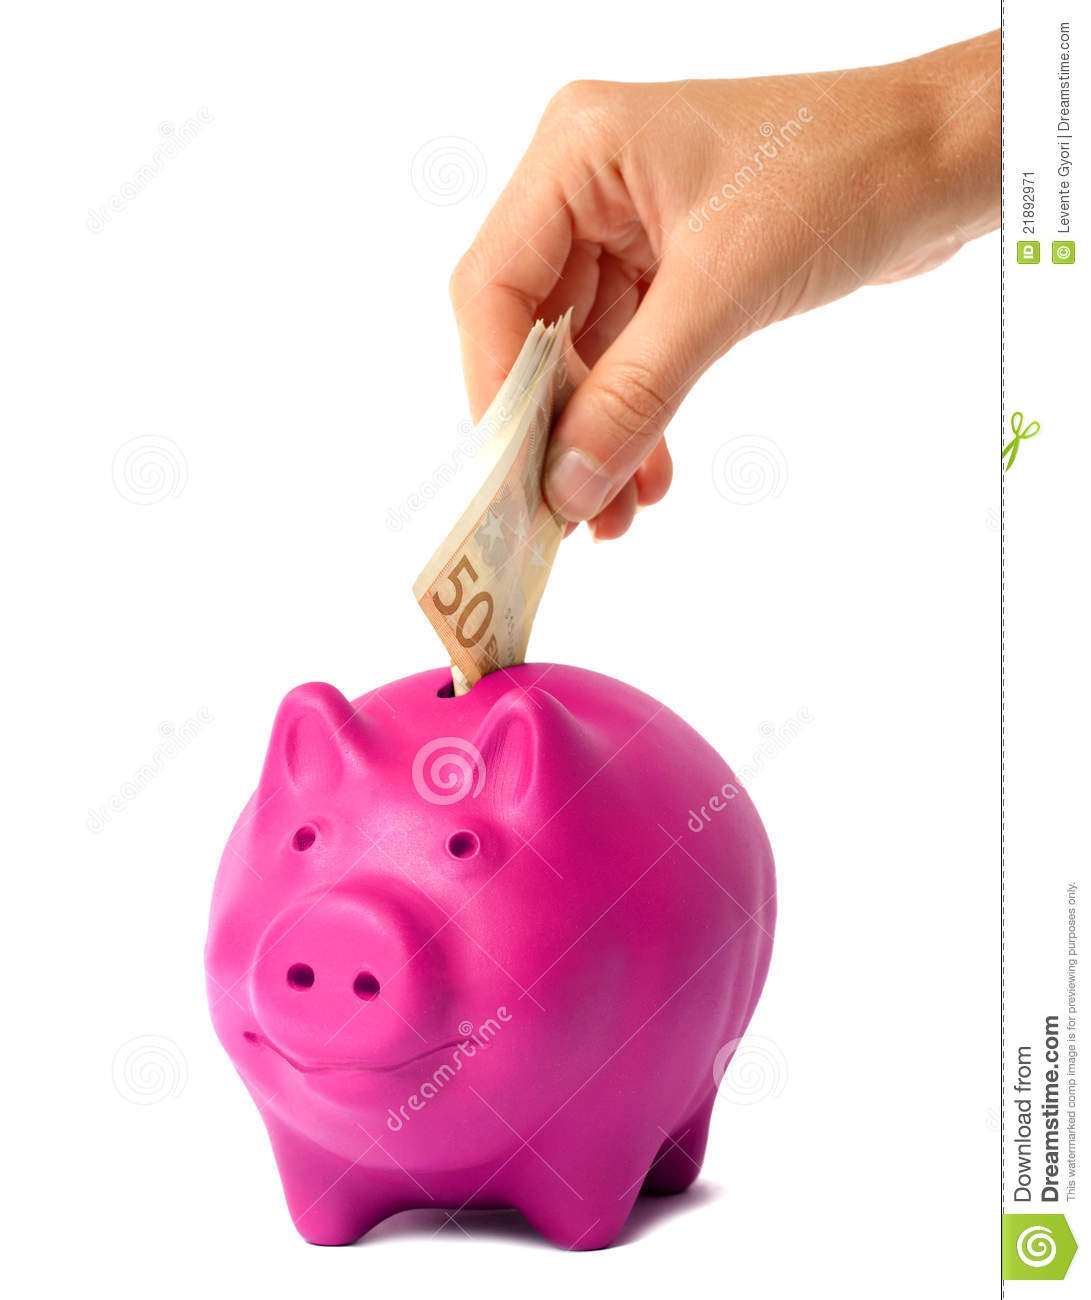 hand putting money into the pink piggy bank stock image